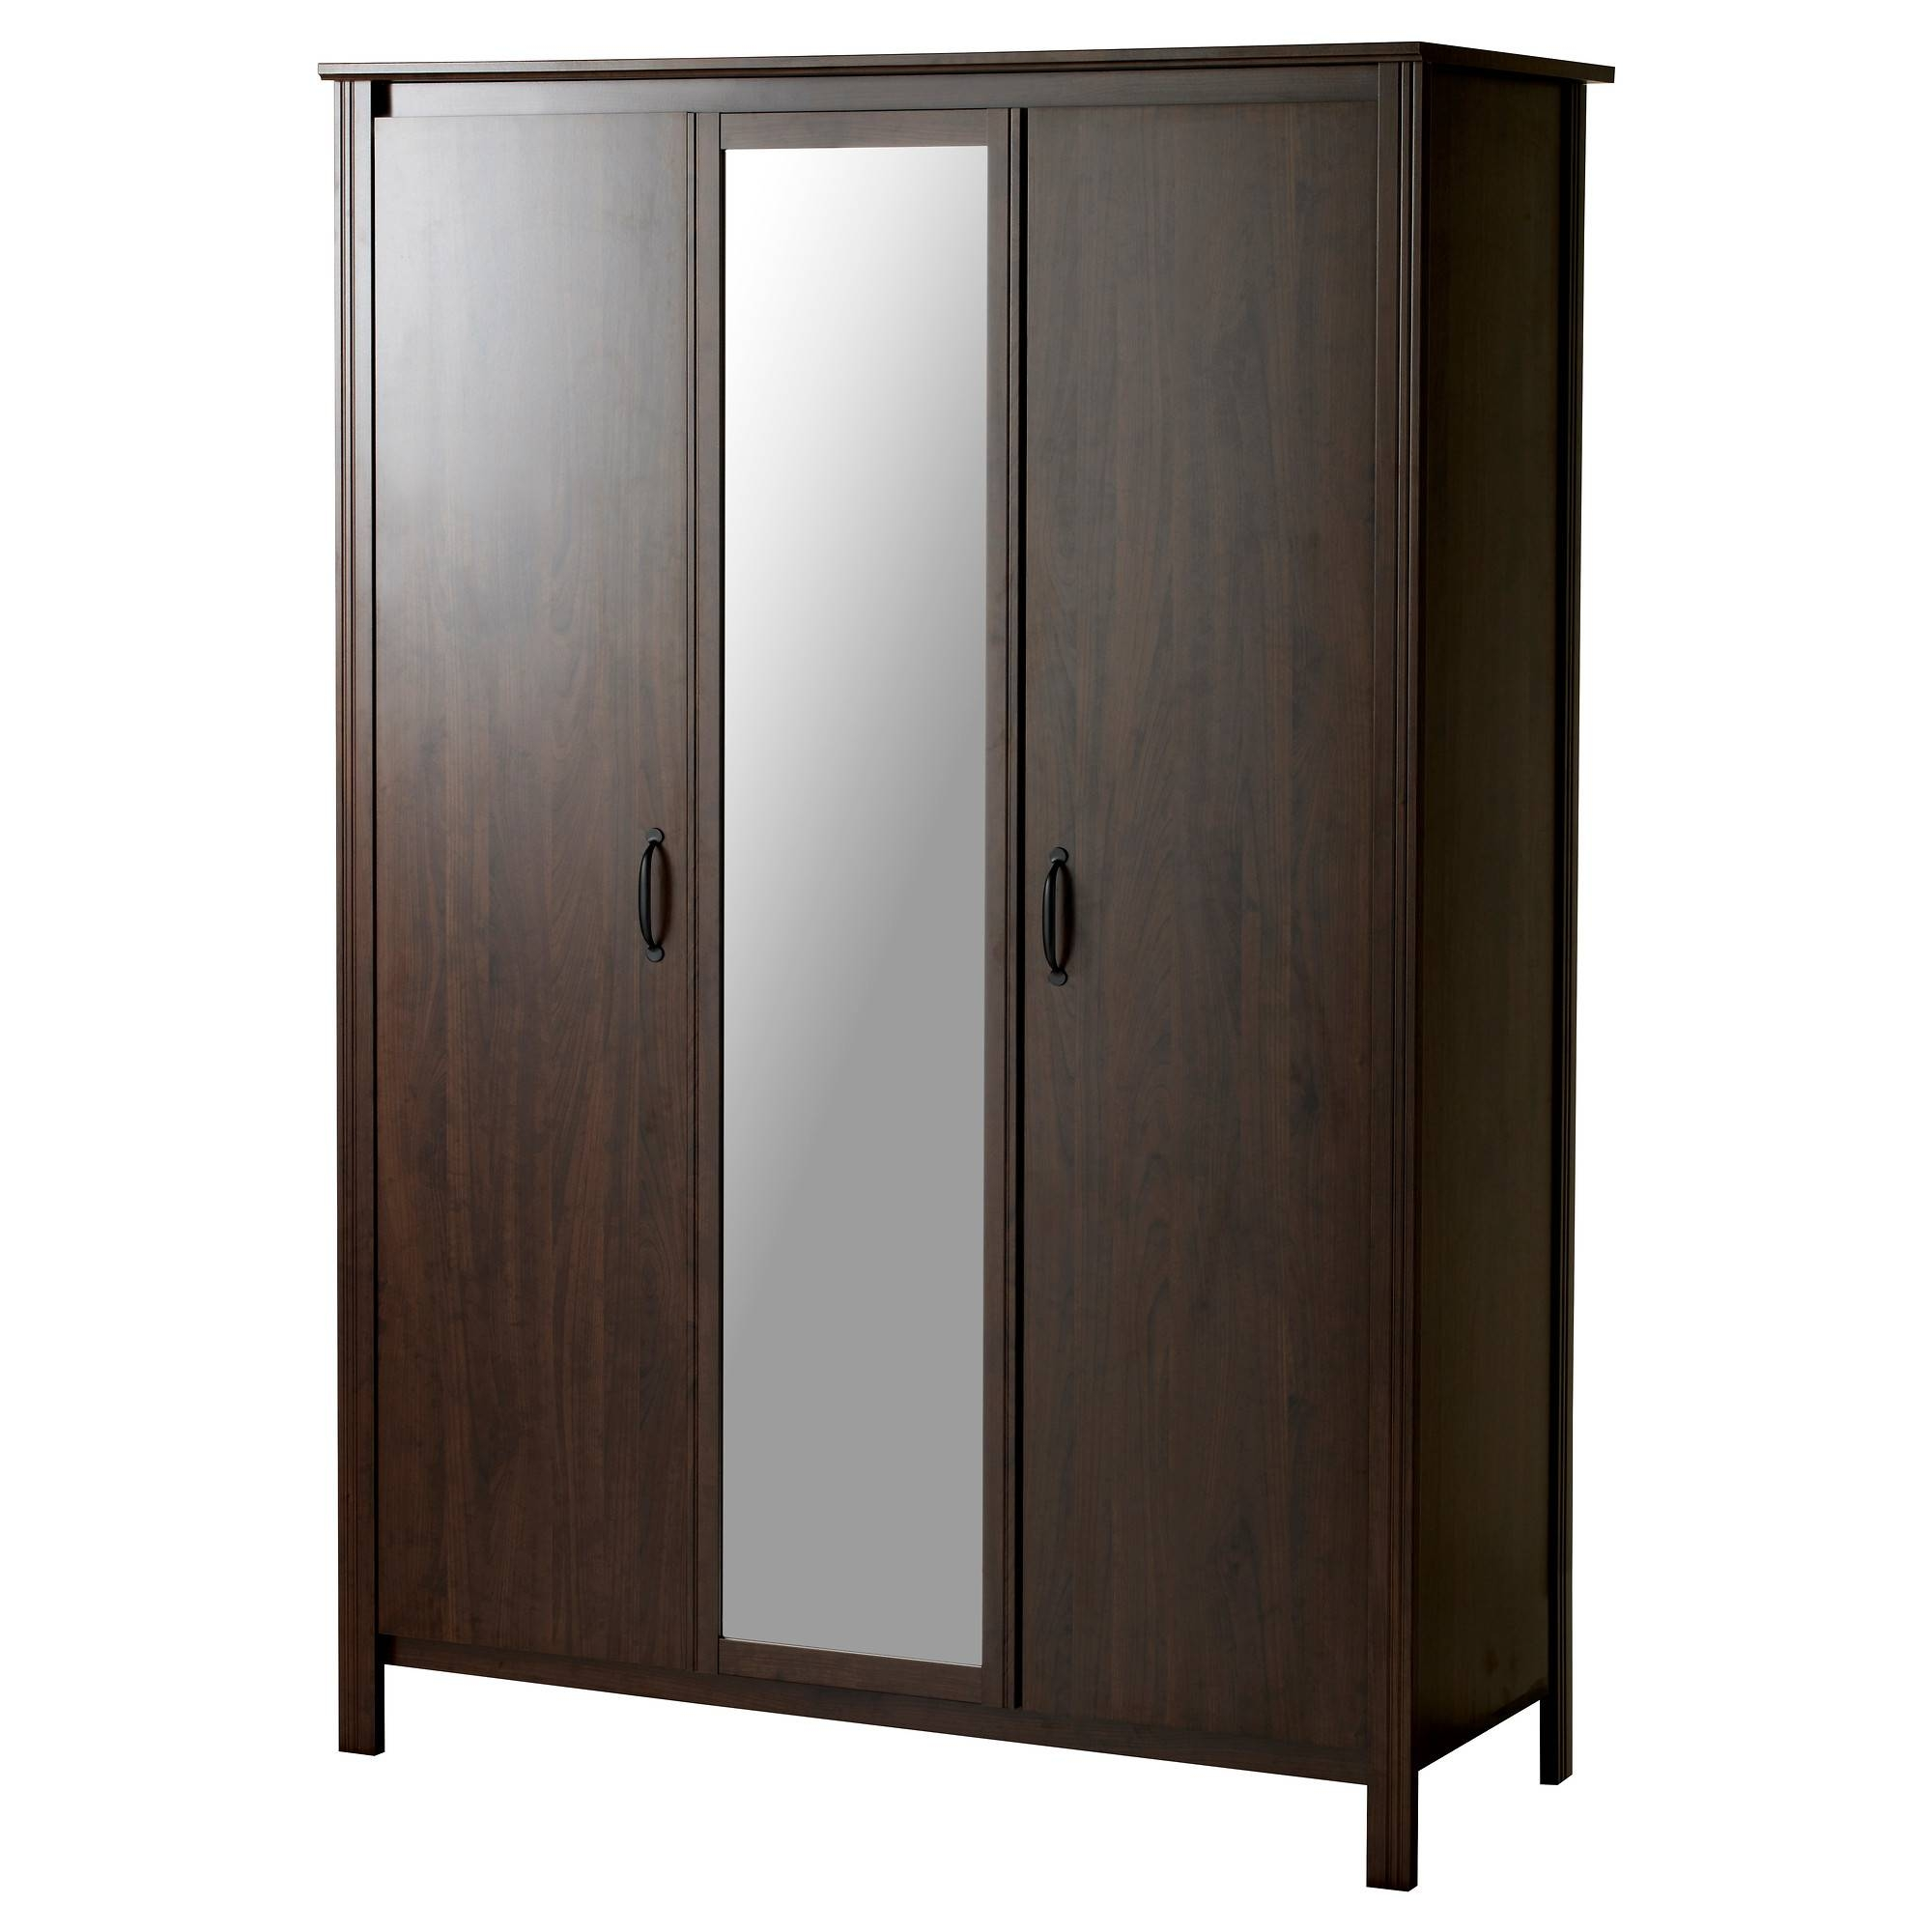 Wardrobes, Armoires & Closets – Ikea Regarding Dark Wood Wardrobe With Mirror (View 29 of 30)